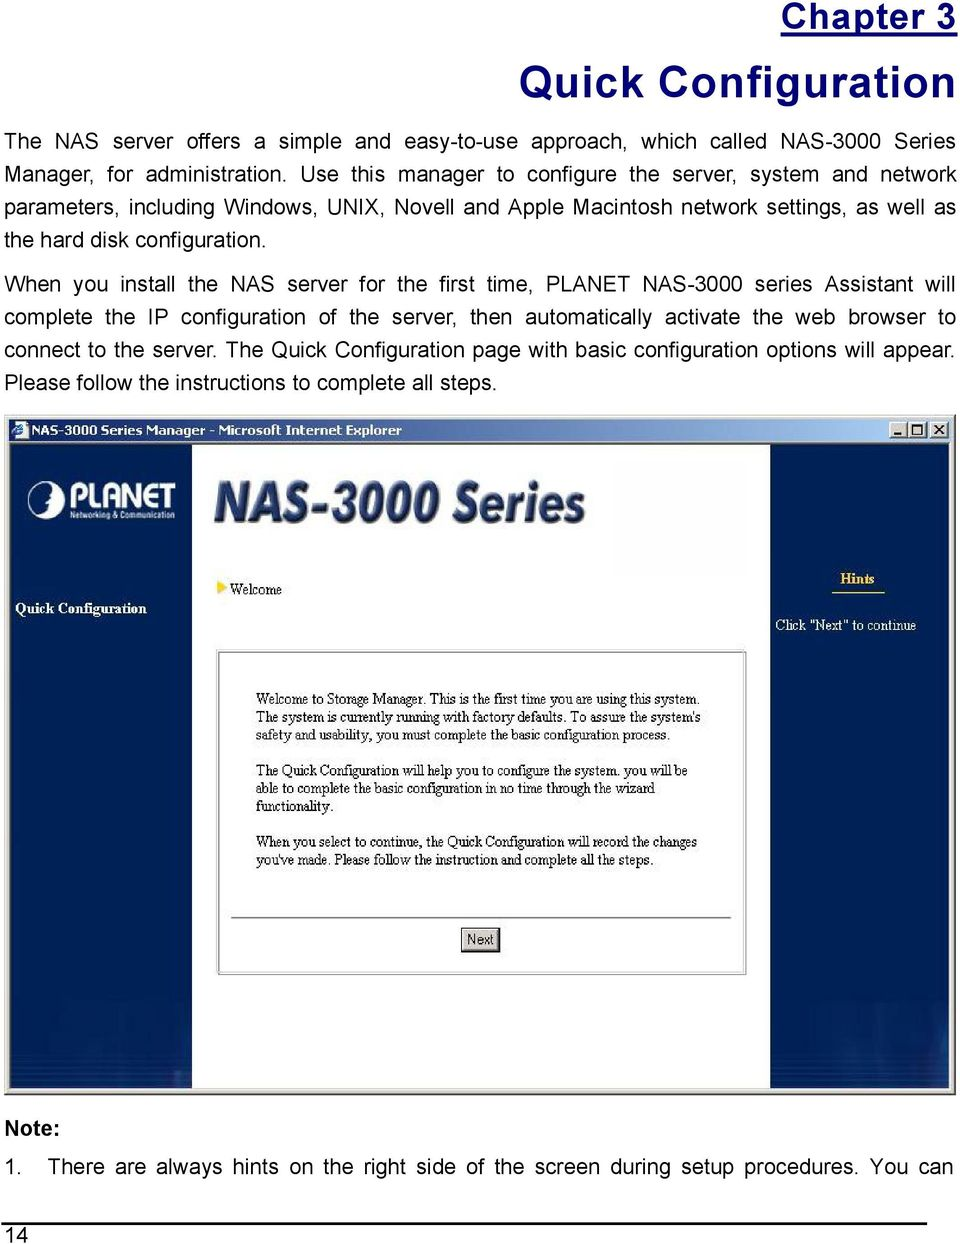 When you install the NAS server for the first time, PLANET NAS-3000 series Assistant will complete the IP configuration of the server, then automatically activate the web browser to connect